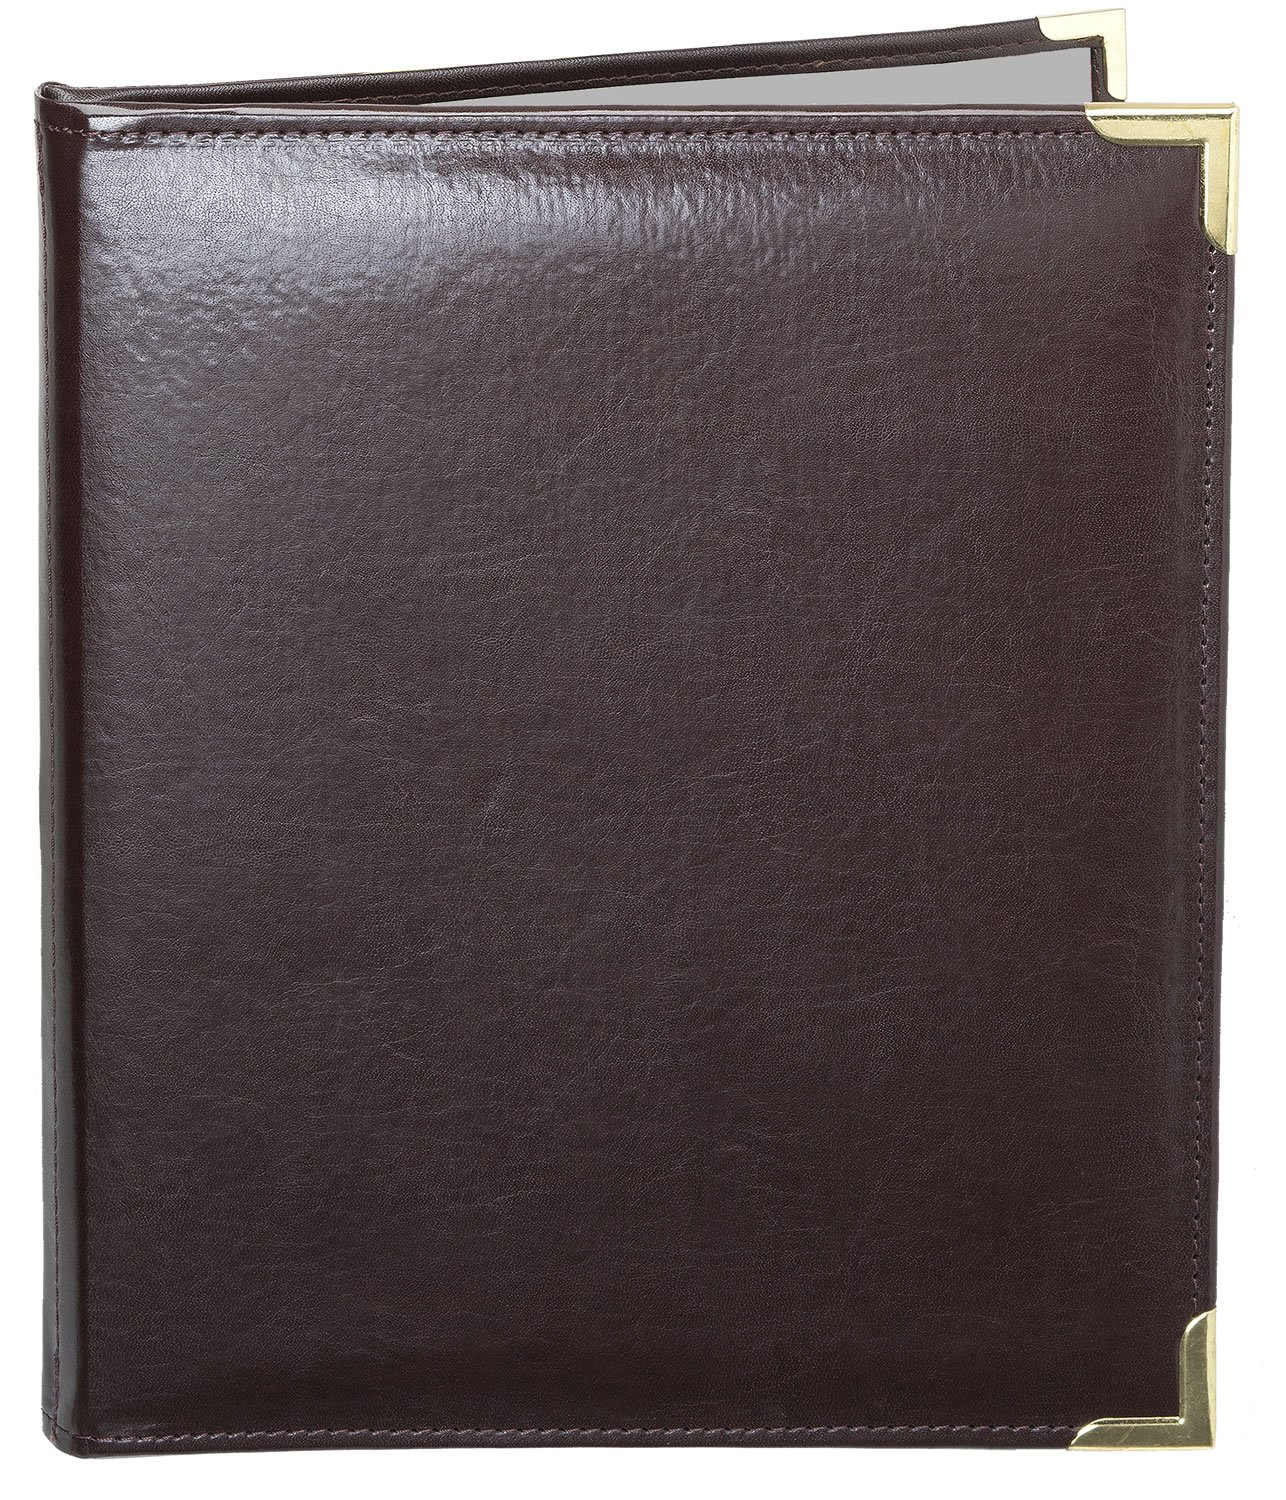 MenuCoverMan • Case of 5 Menu Covers • Allante #7002 BROWN DOUBLE PANEL - 2-VIEW - 8.5'' W x 11'' H - STITCHED-Elegant Gold metal corners. See all covers: type MenuCoverMan in Amazon search.